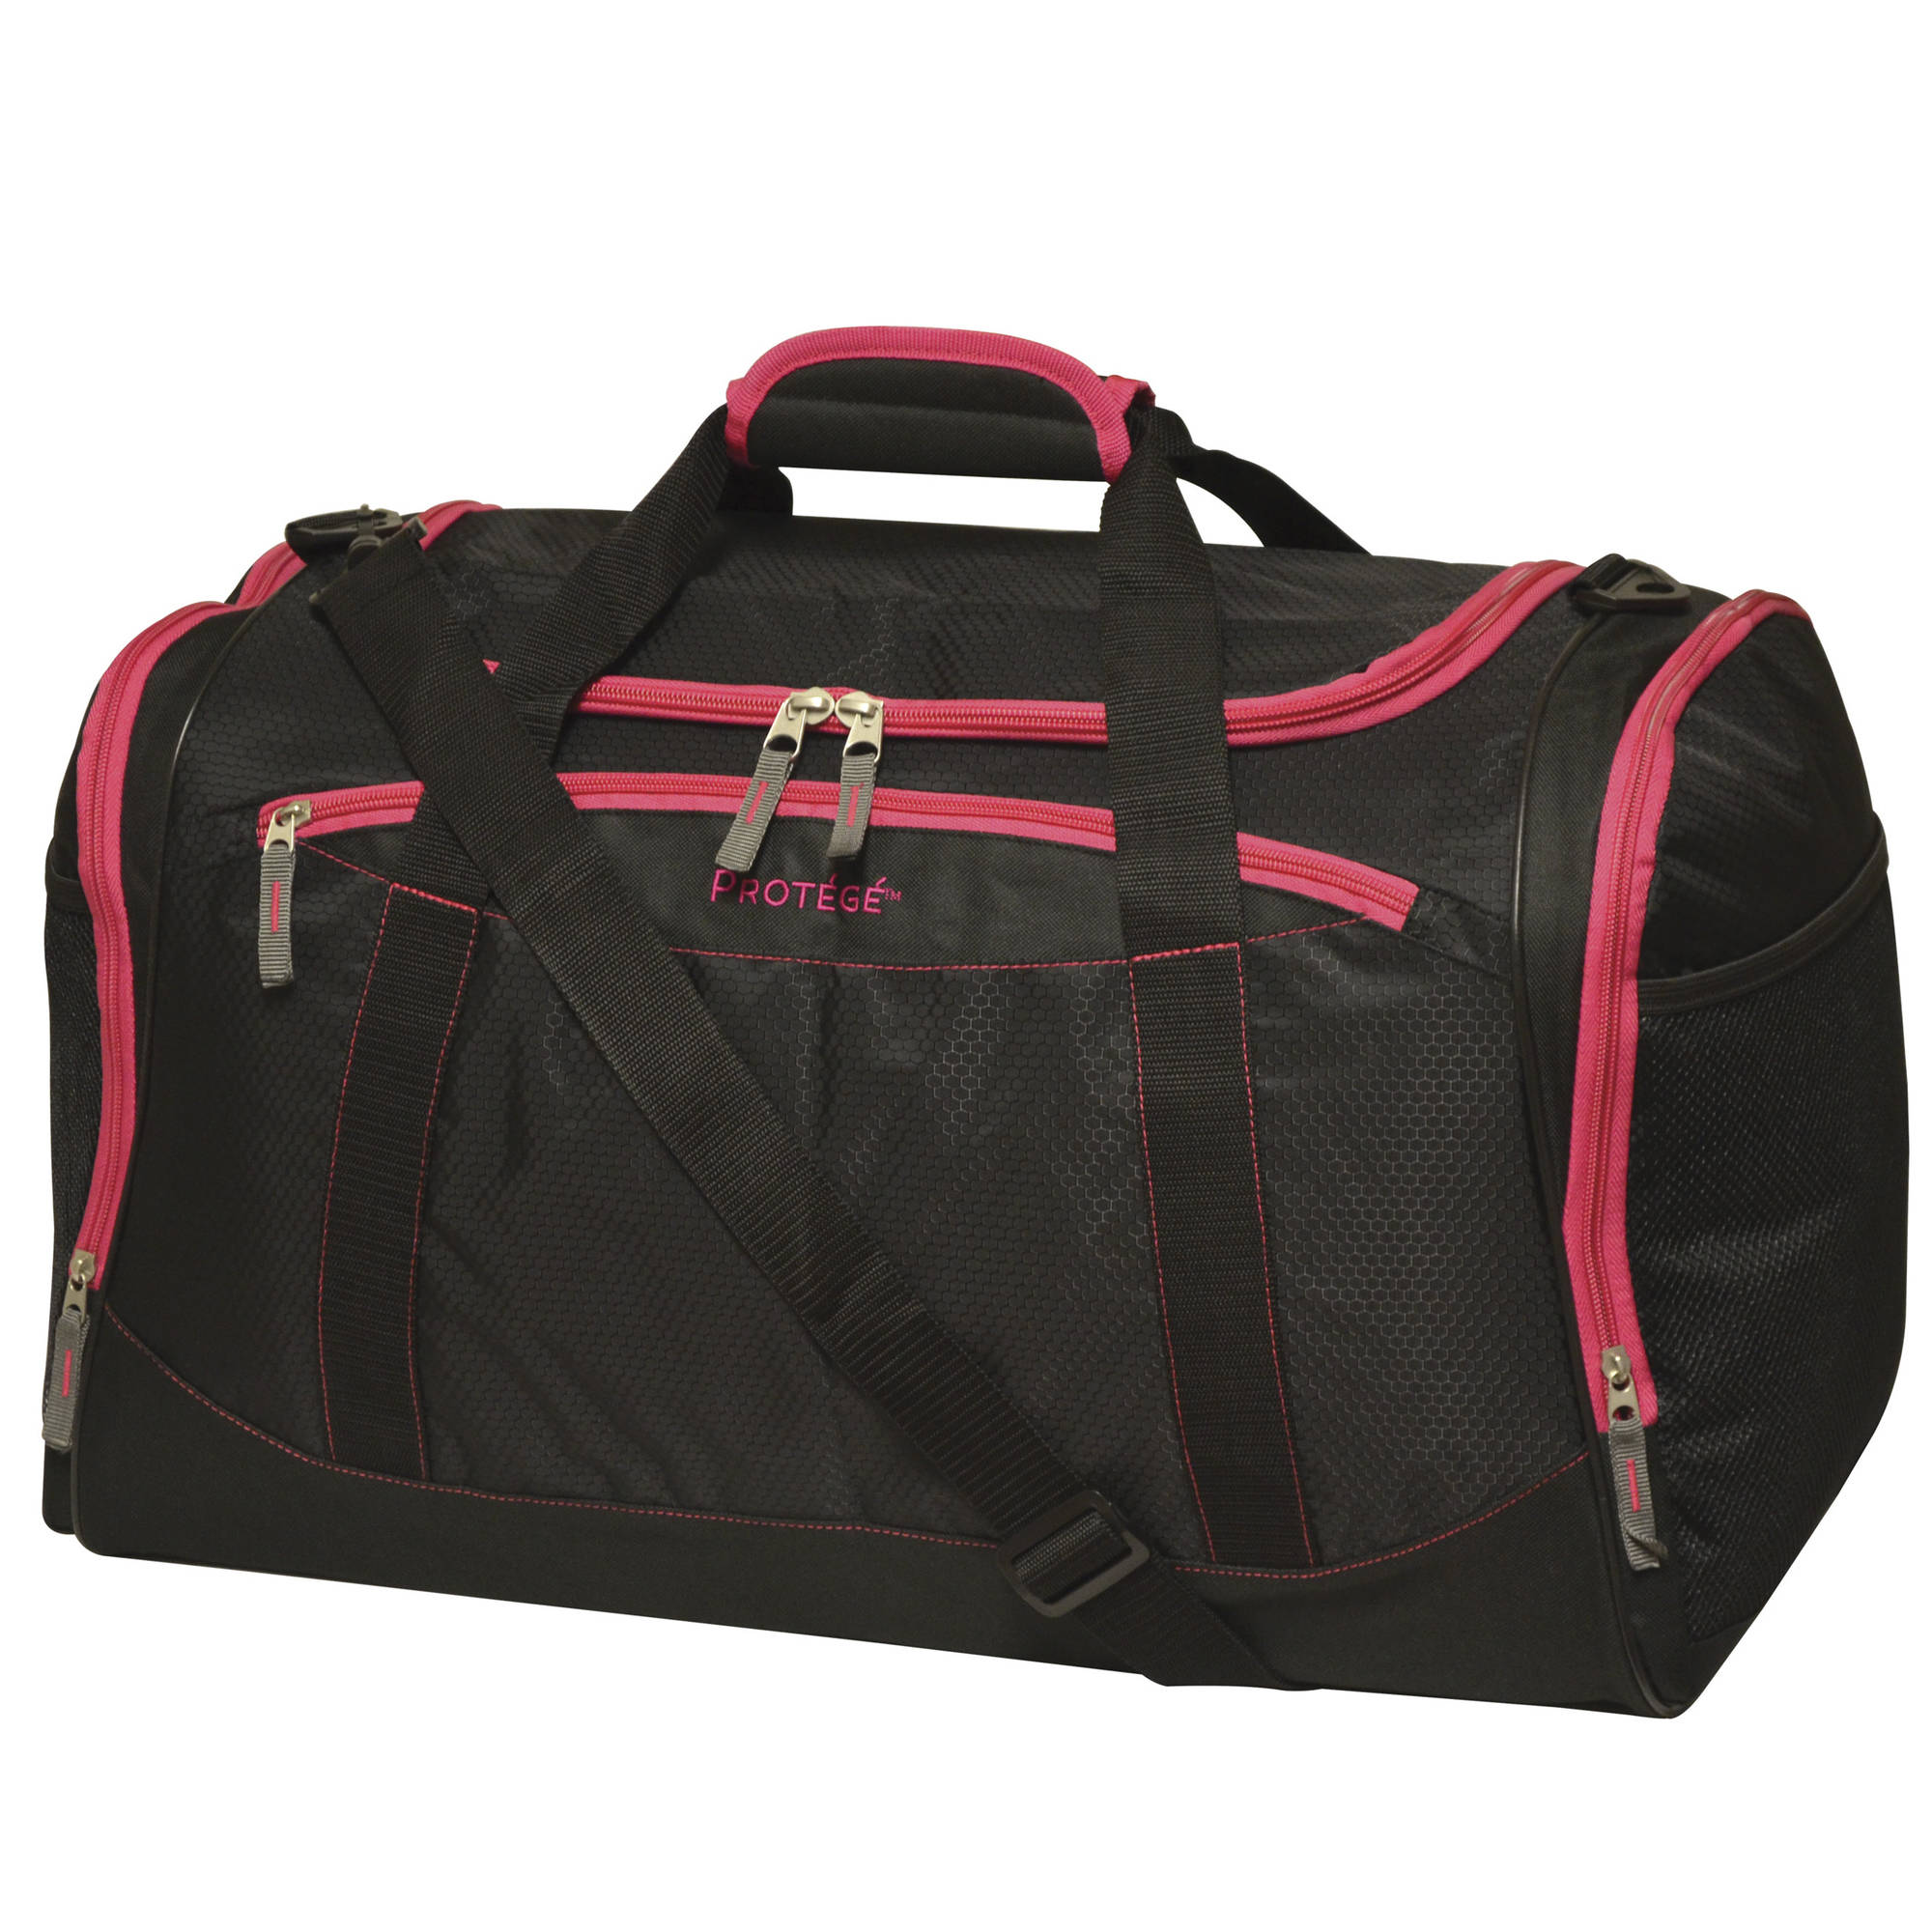 "Protege 22"" Duffel, Black with Pink"